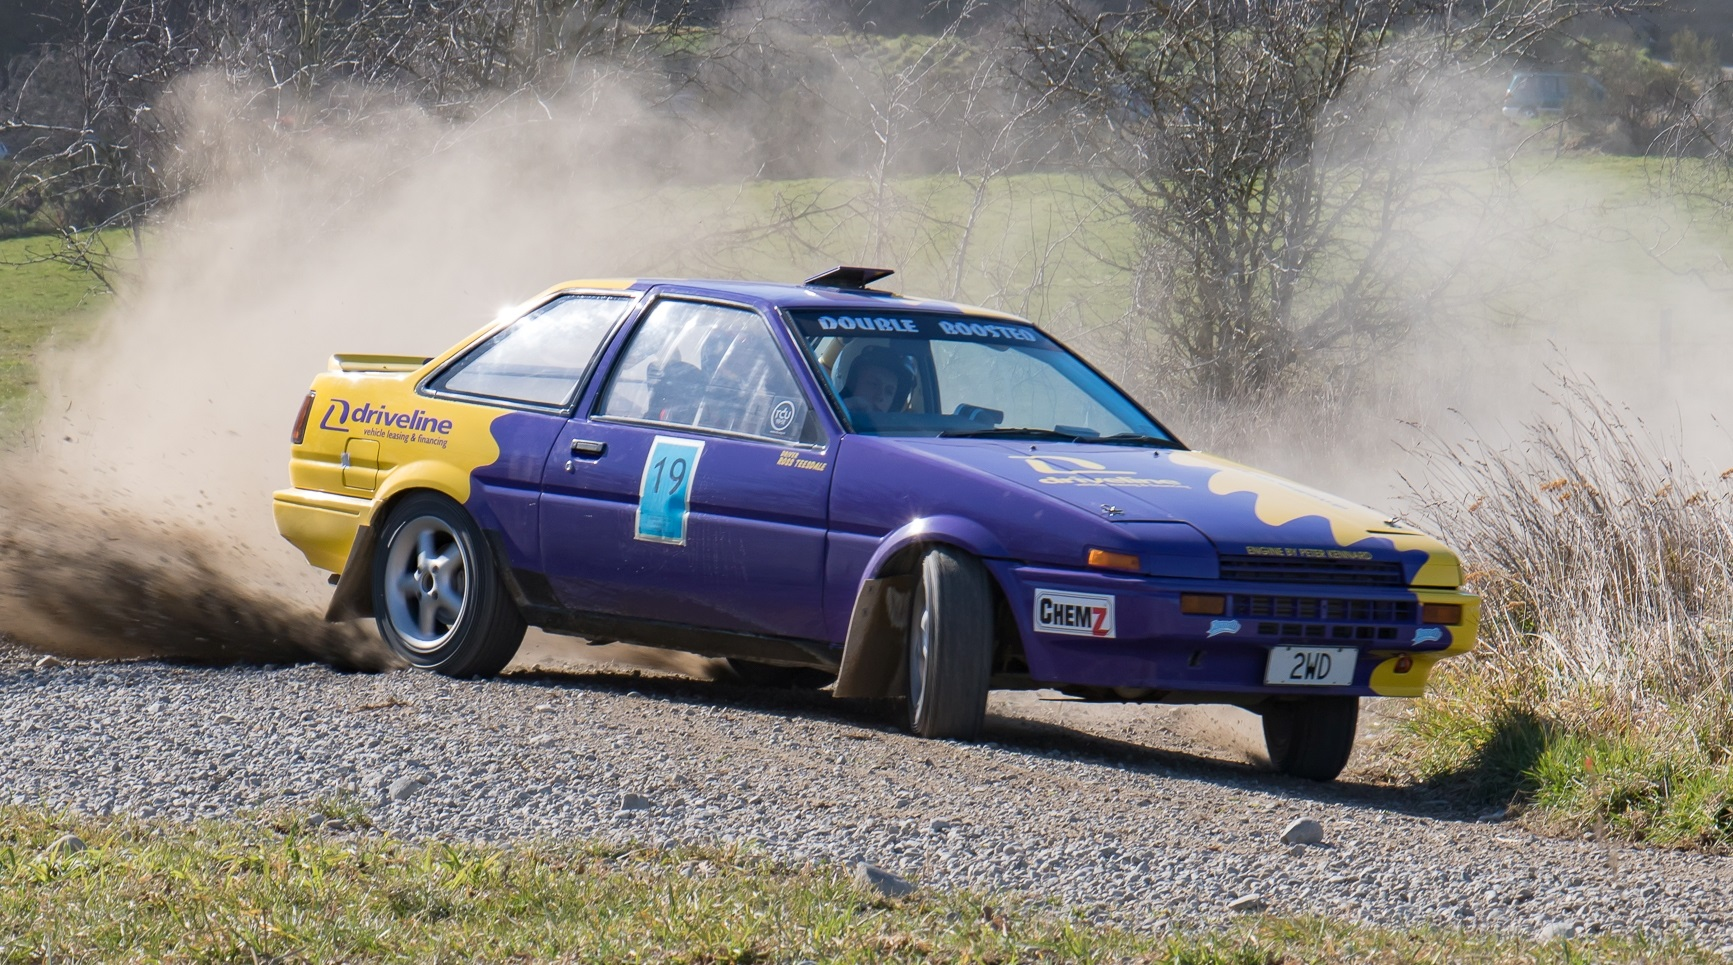 rally-car-in-acttion